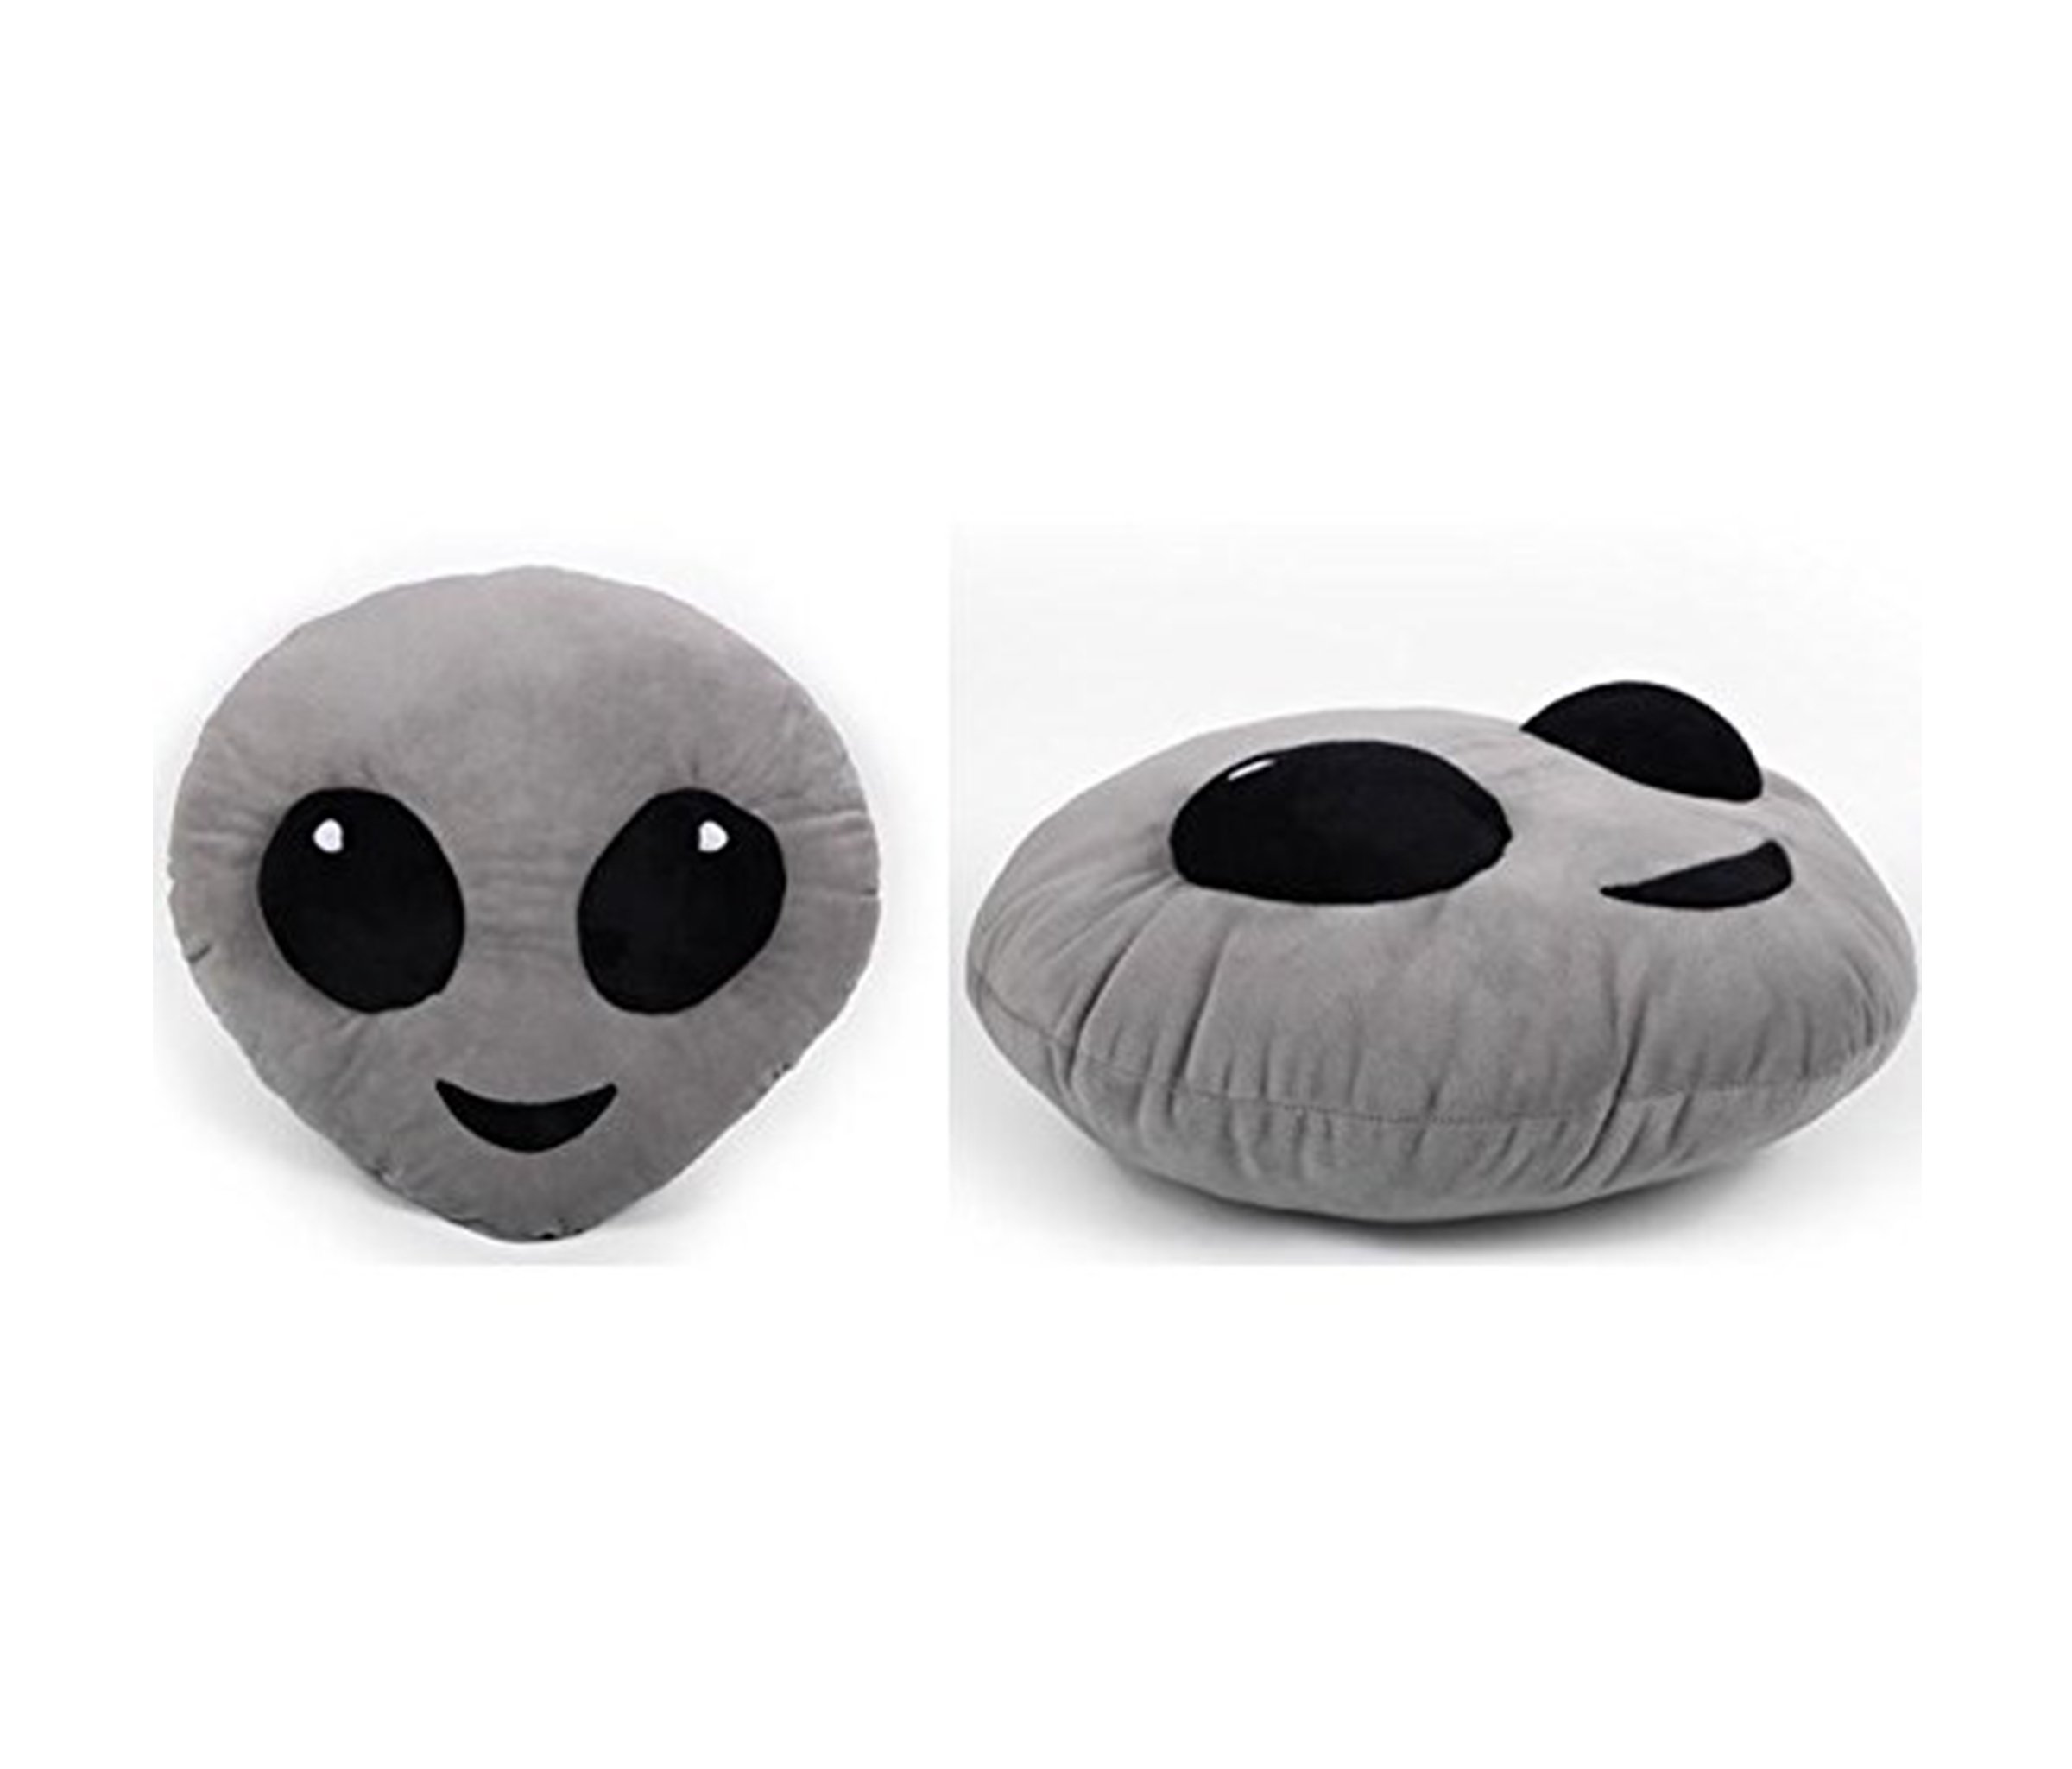 Mozlly Multipack - Top Trenz Inc Mojicon Grey Alien Emoji Large Throw Plush Pillow - 14 inch x 14 inch - Novelty Home Décor (Pack of 6) - Item #S135006_X6